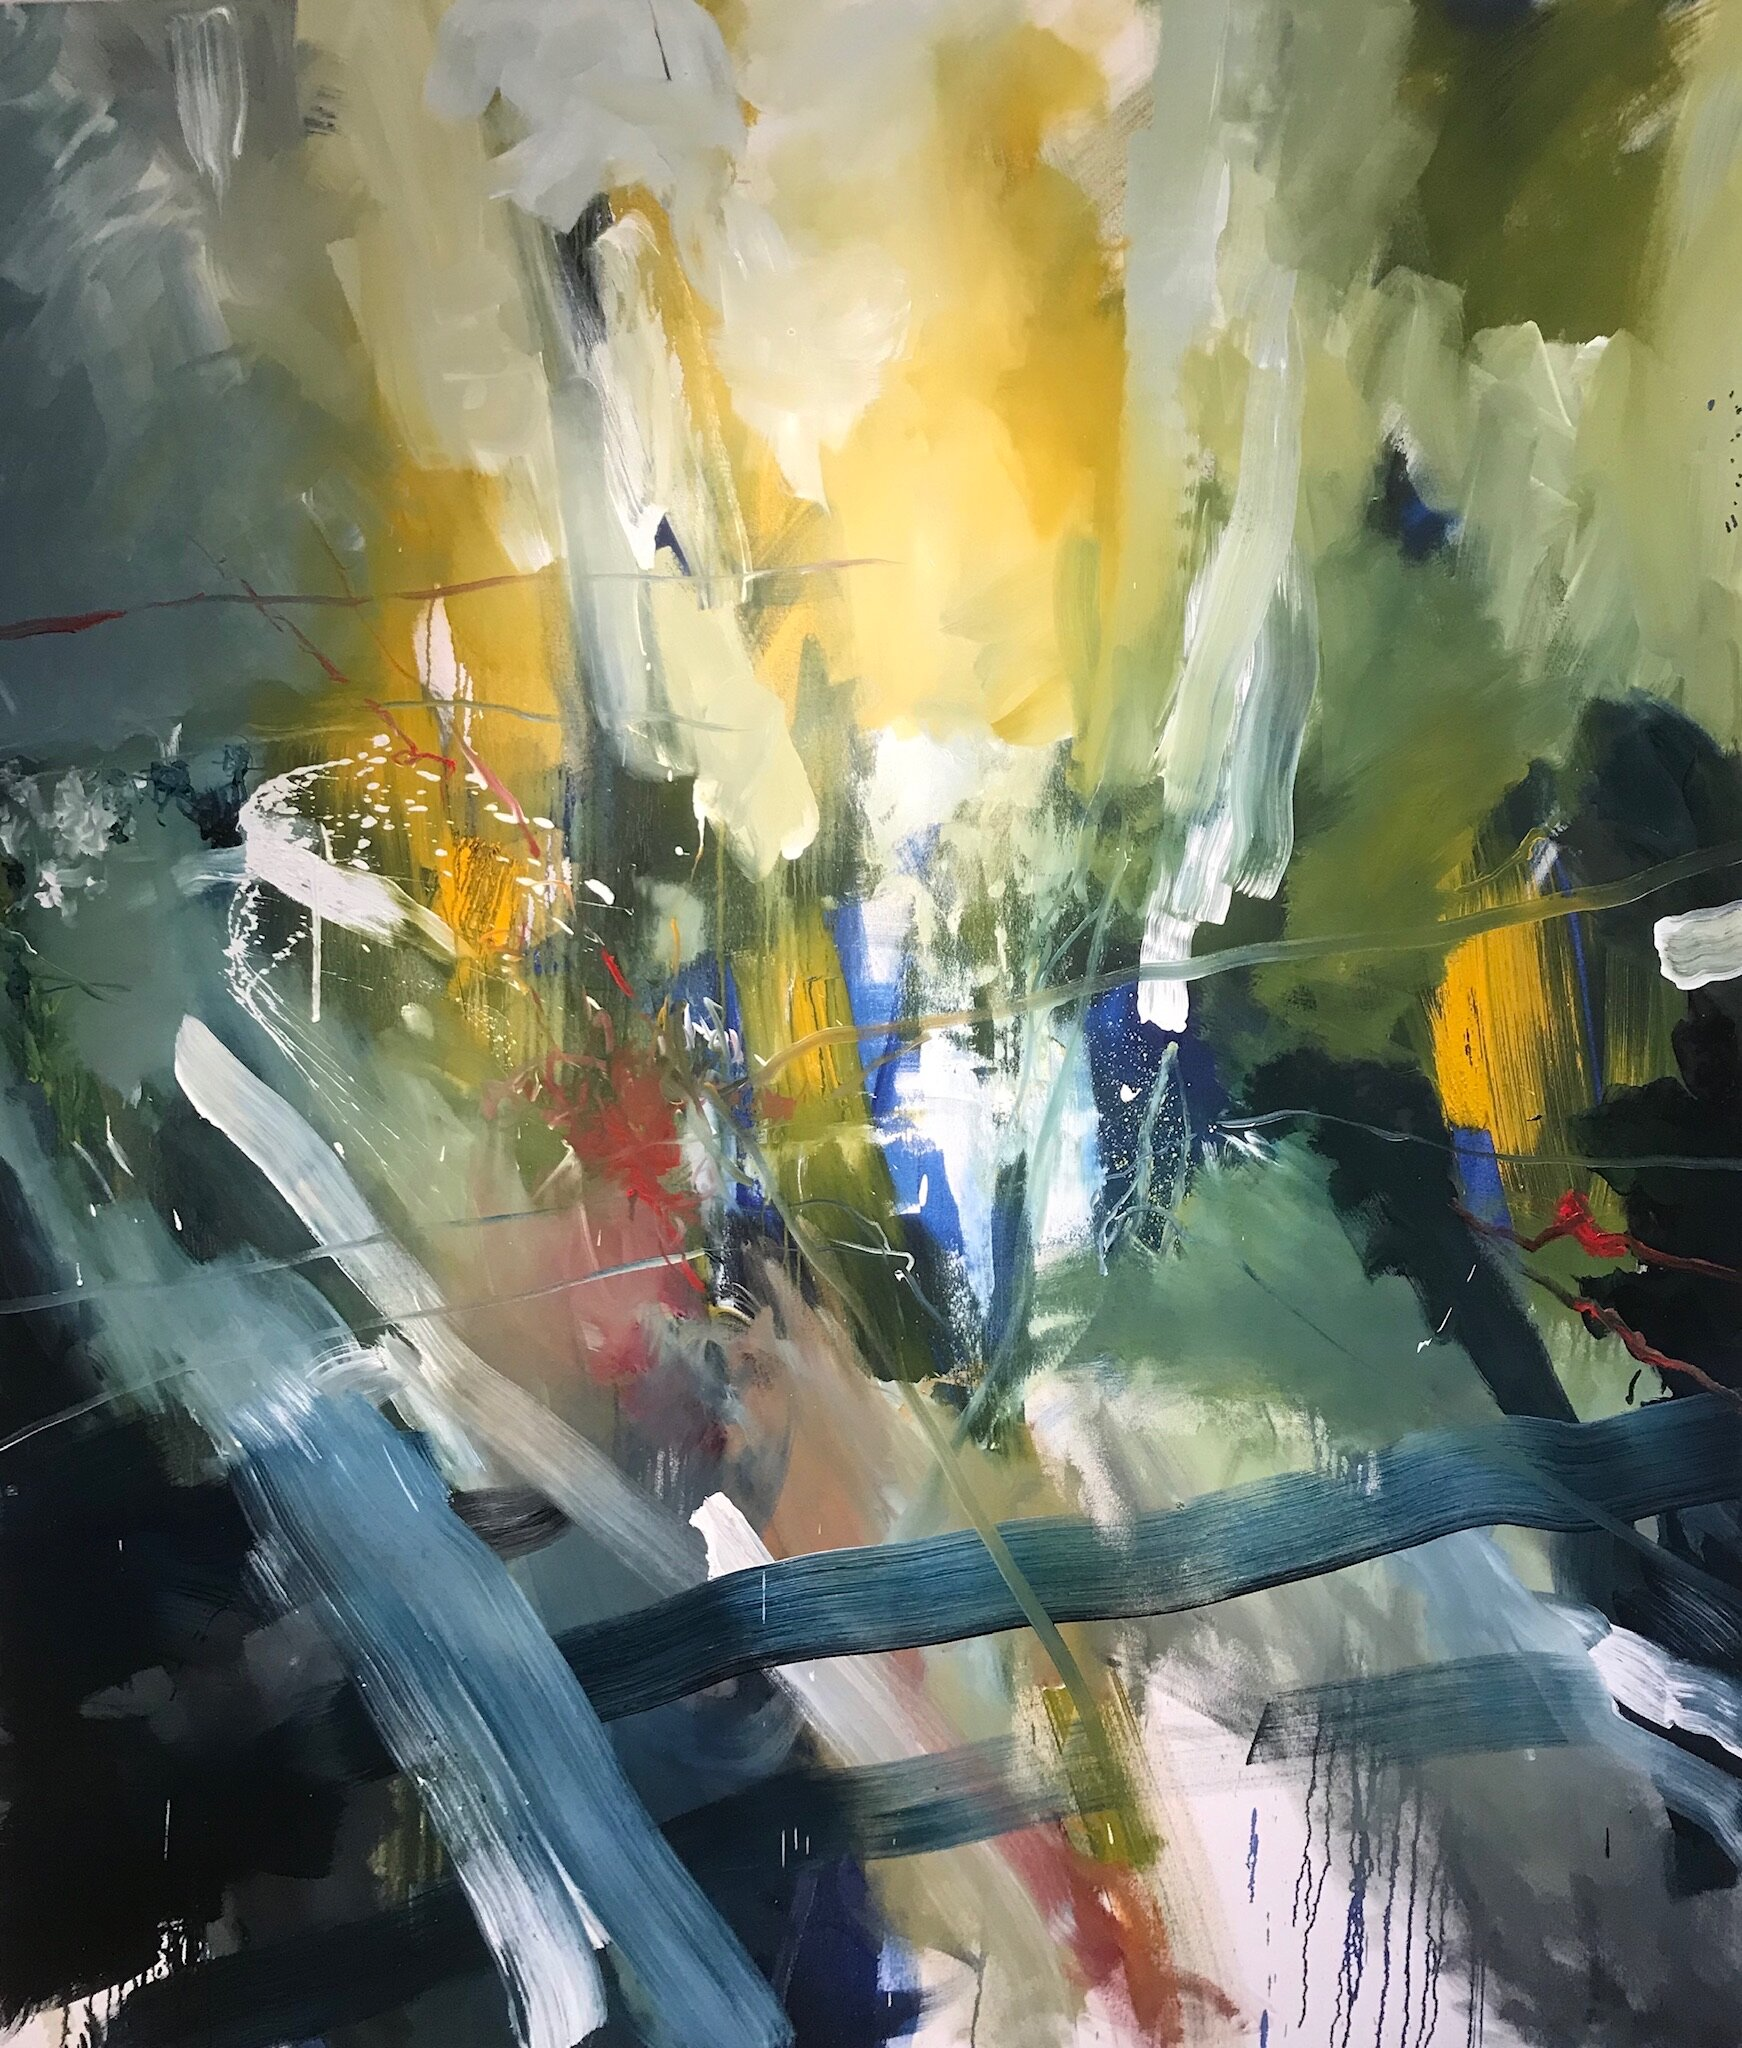 "Untitled 70"" x 80"" Oil on Canvas 2018-19"